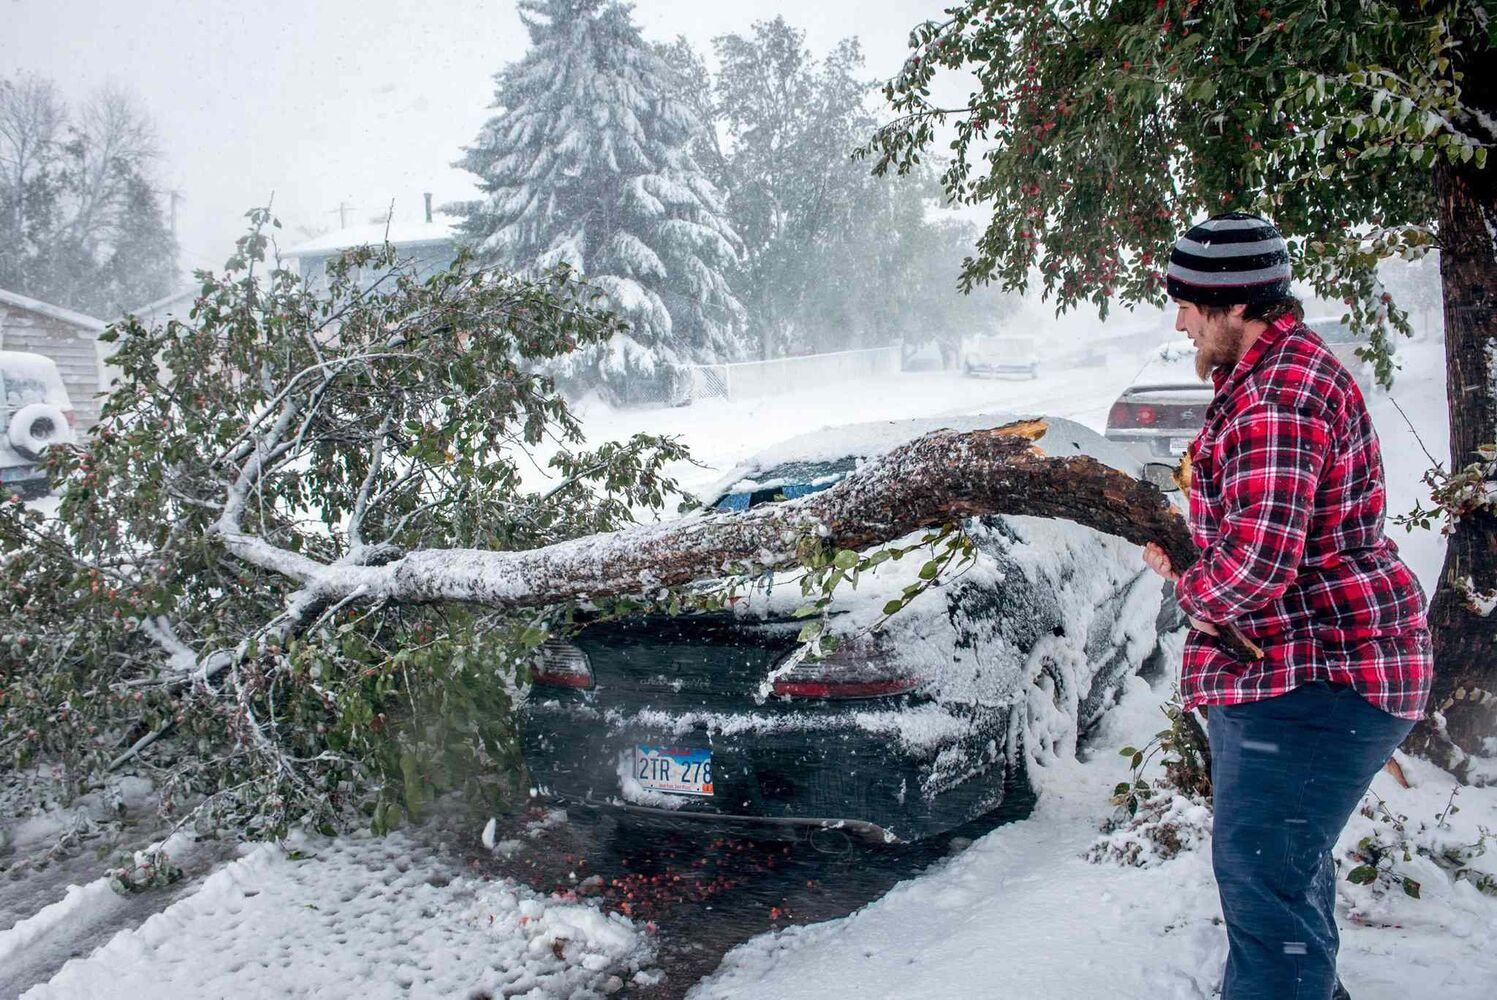 Zack Ruml, 20, of Rapid City, S.D, lifts a heavy crabapple tree branch off of his 1998 Pontiac Gran Prix on Friday, Oct. 4, 2013. The branch smashed the rear window and dented the trunk of the car. Trees in the city are still fully leaved and the heavy snow is breaking branches throughout the city.  (Steve McEnroe / The Associated Press)